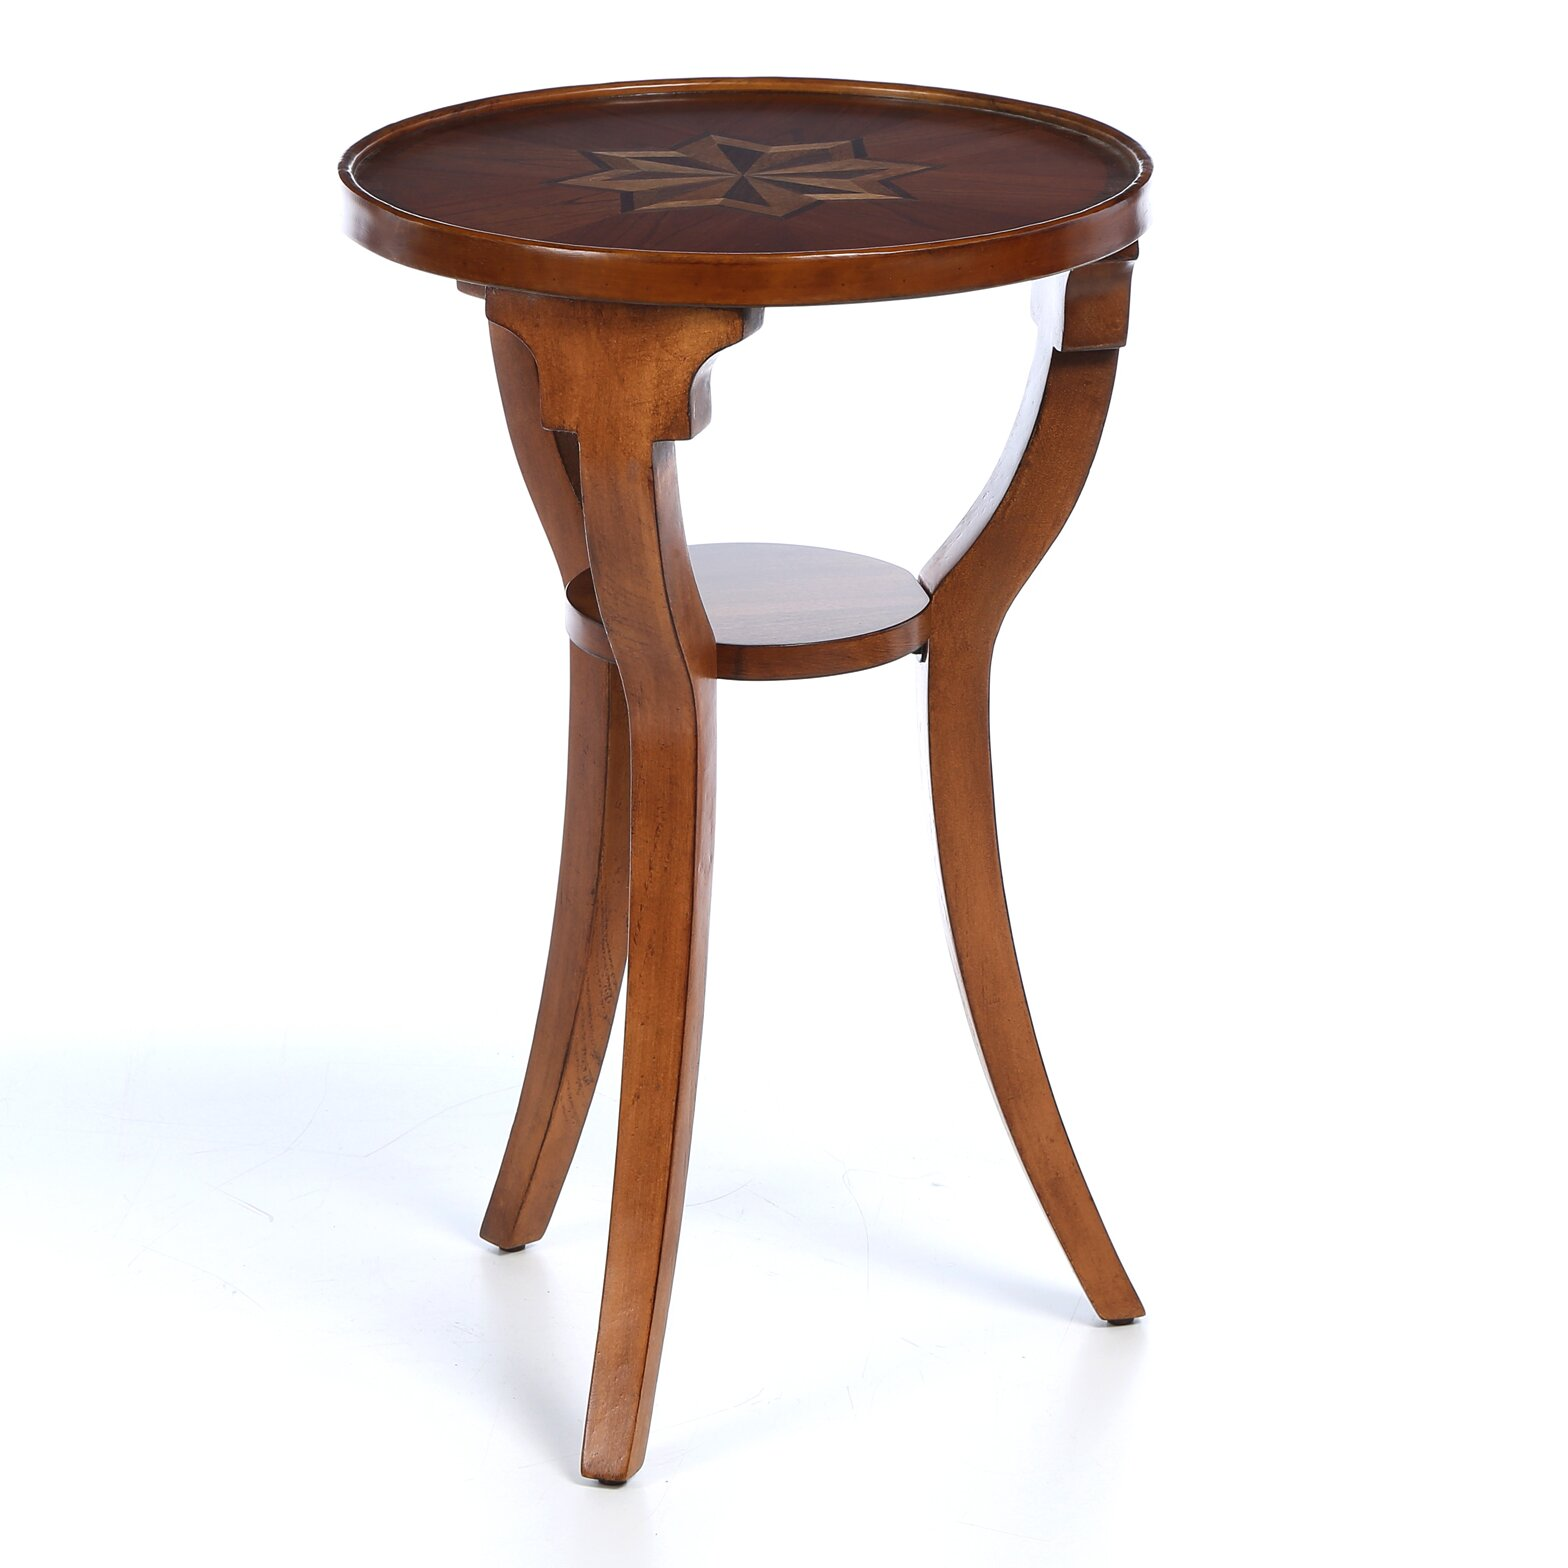 Alcott Hill Riley Round Accent Table & Reviews | Wayfair